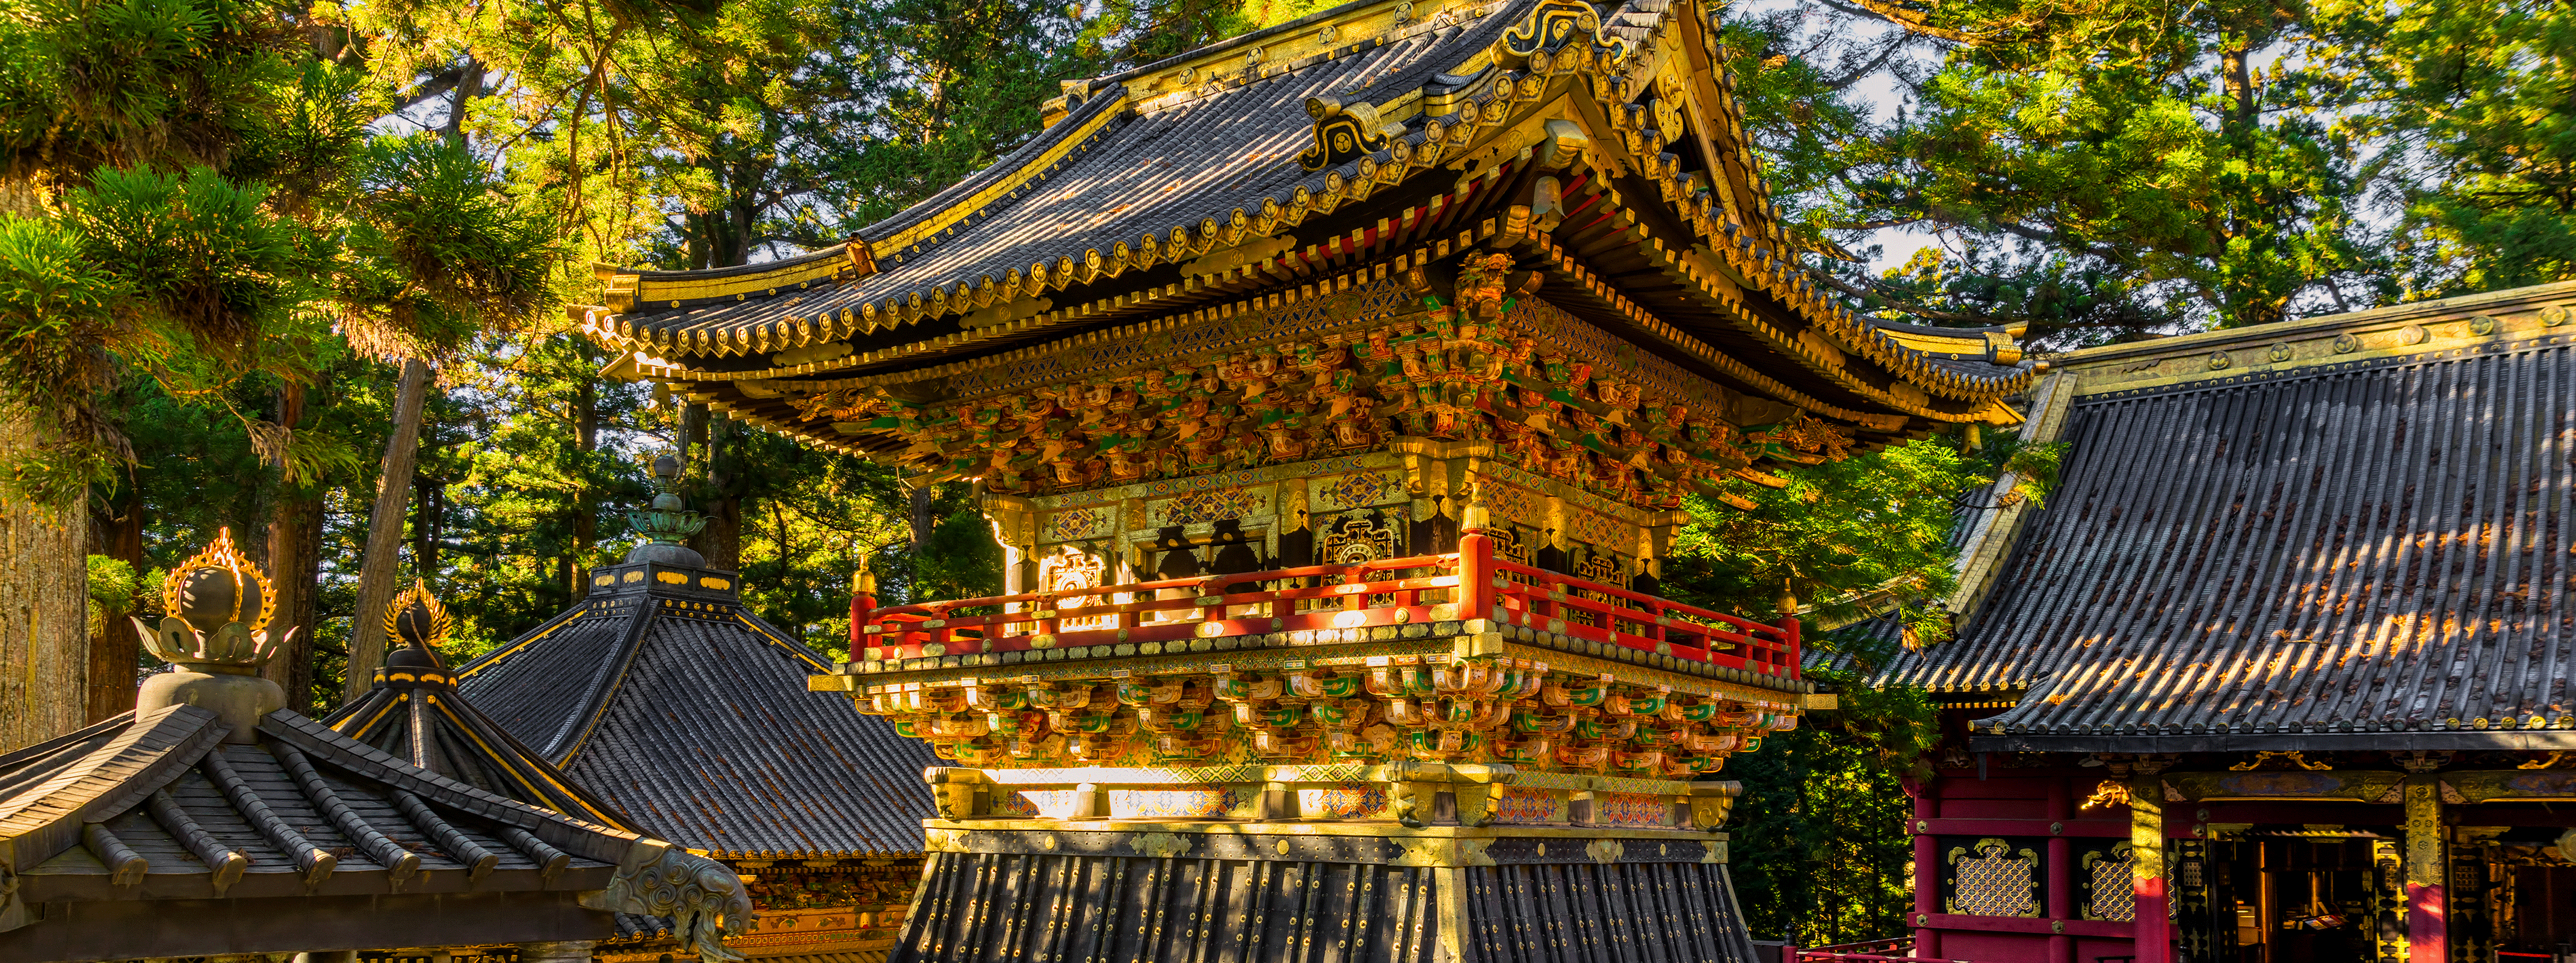 /resource/Images/hongkong/headerimage/Toshogu-Shrine-at-Nikko-Japan.png